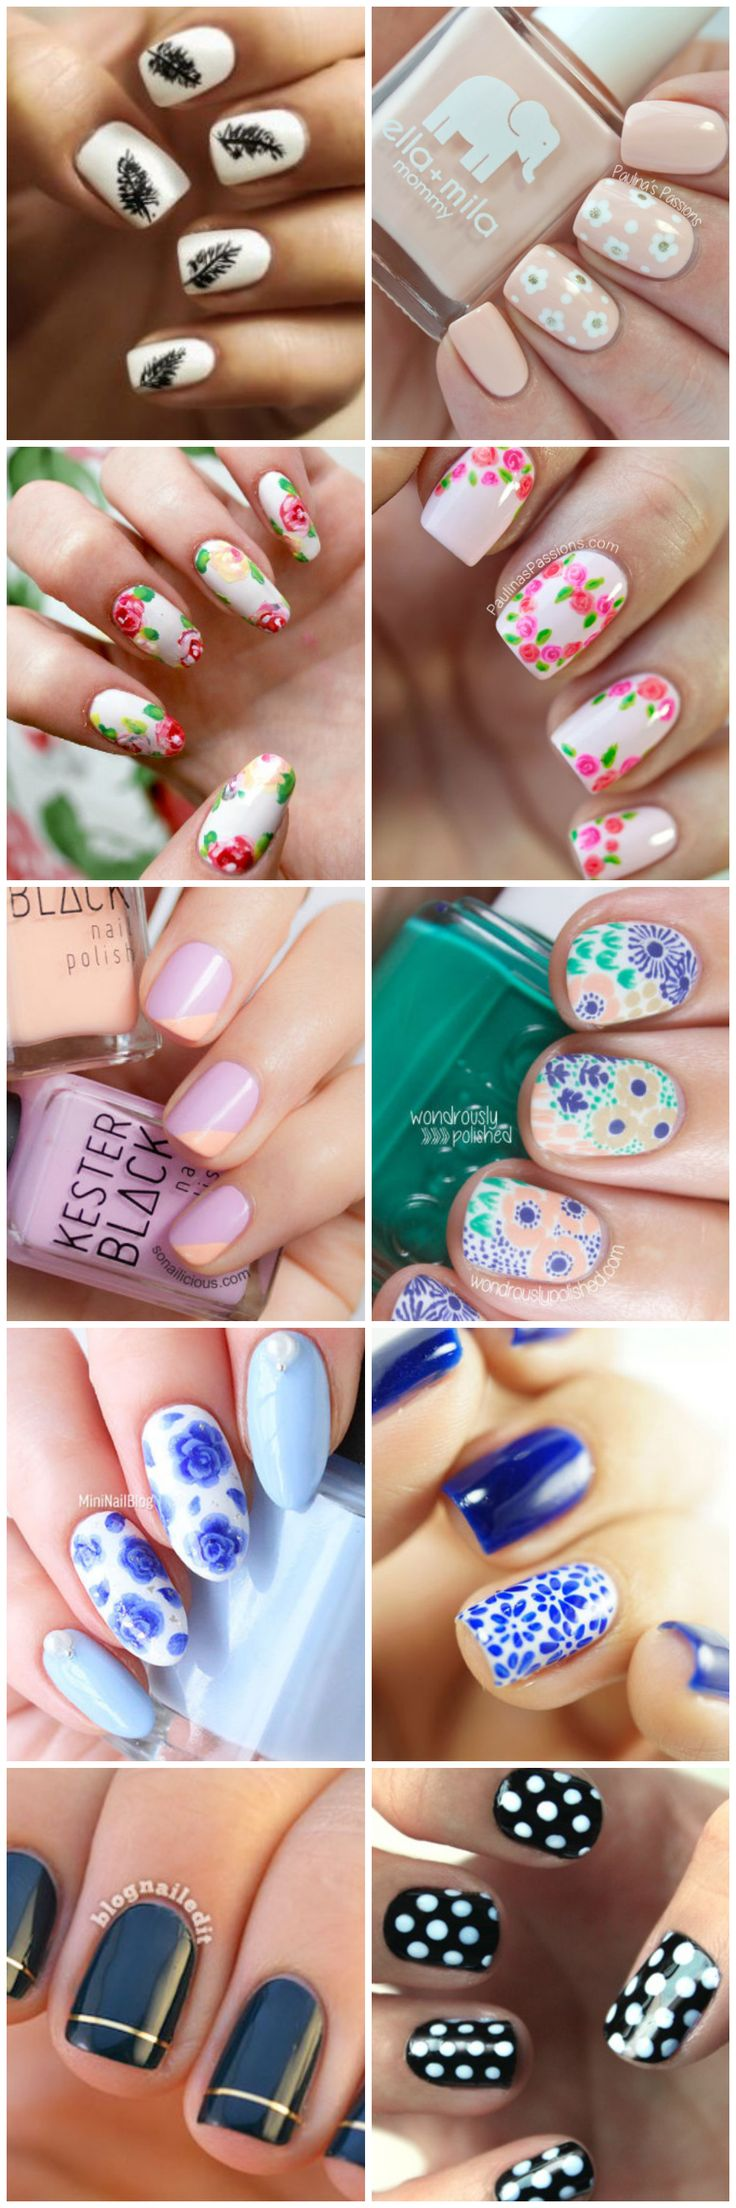 Cute Manicure Ideas for Your Nails